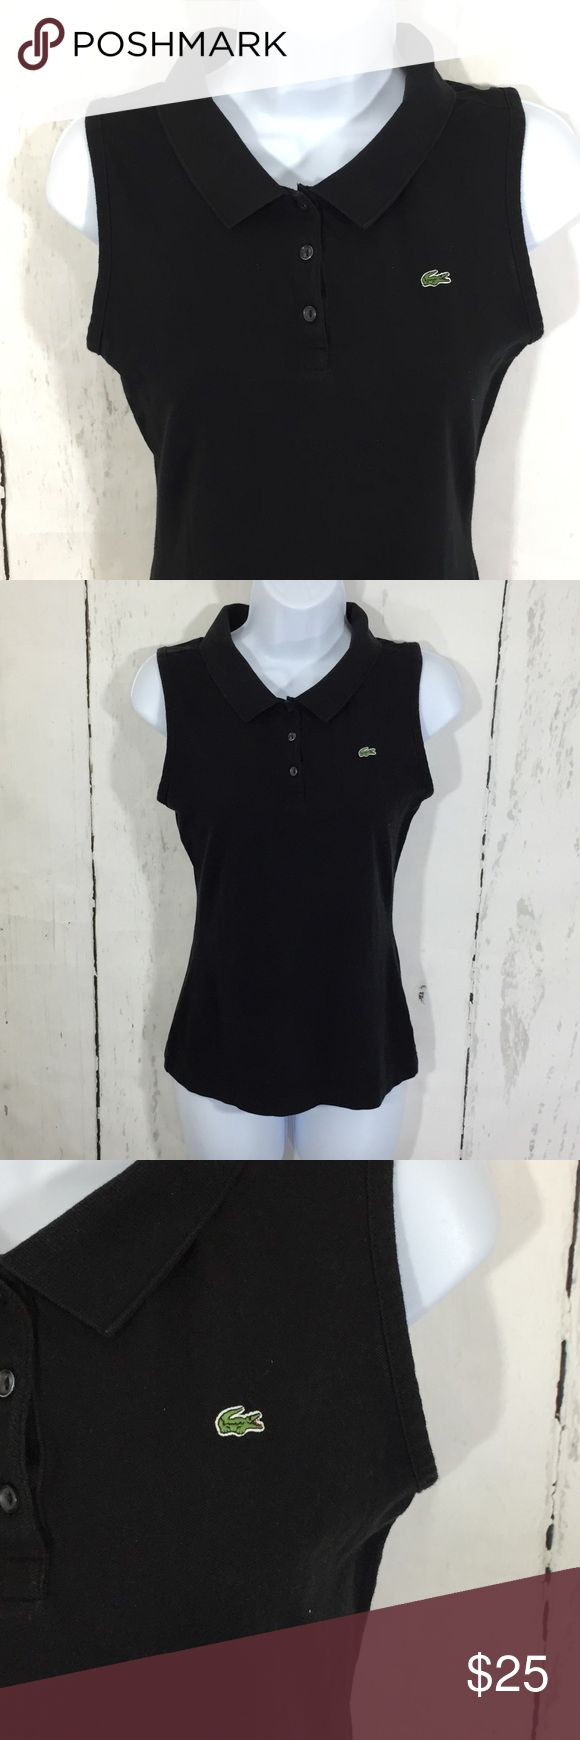 Lacoste Sleeveless Polo Shirt • Lacoste Polo Shirt Black Sleeveless  • Lacoste size 36 = US size 4 • Size 36 US size 4 - bust 33, length 23.5 • 96% Cotton 4% Elastene  • Nonsmoking home Lacoste Tops